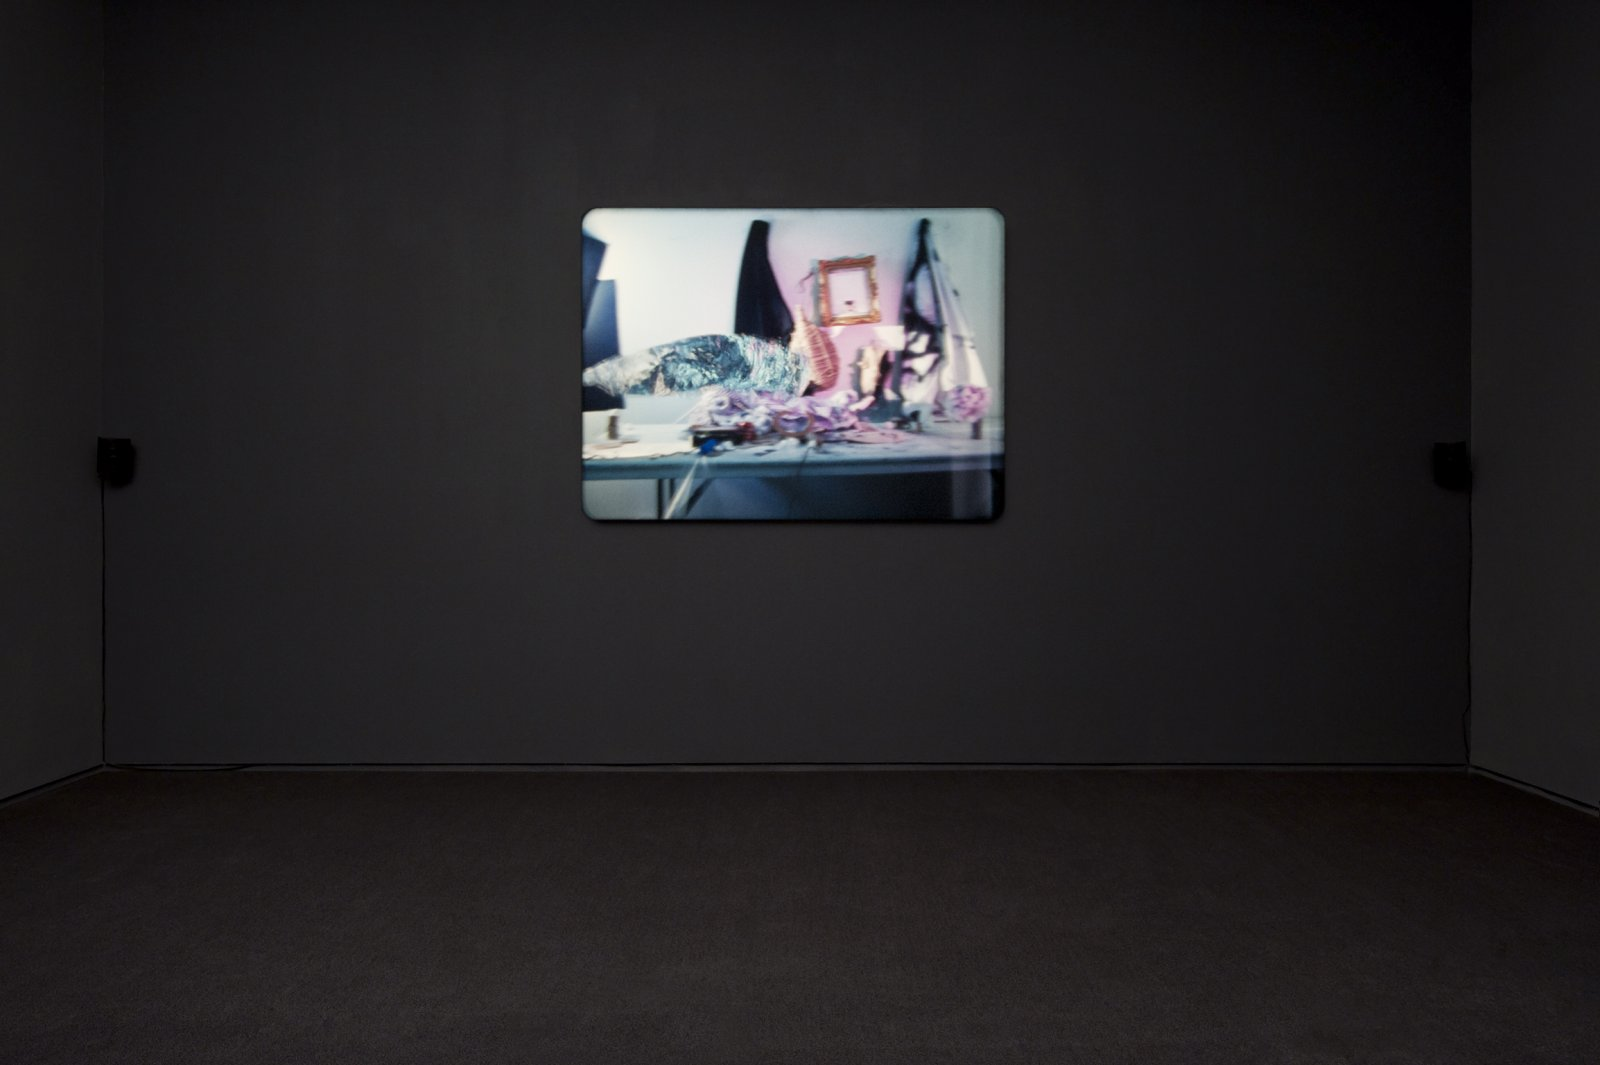 Julia Feyrer, The artist's studio, 2010, colour 16mm film loop with non-synchronized sound, 5 minutes, 5 seconds by Julia Feyrer